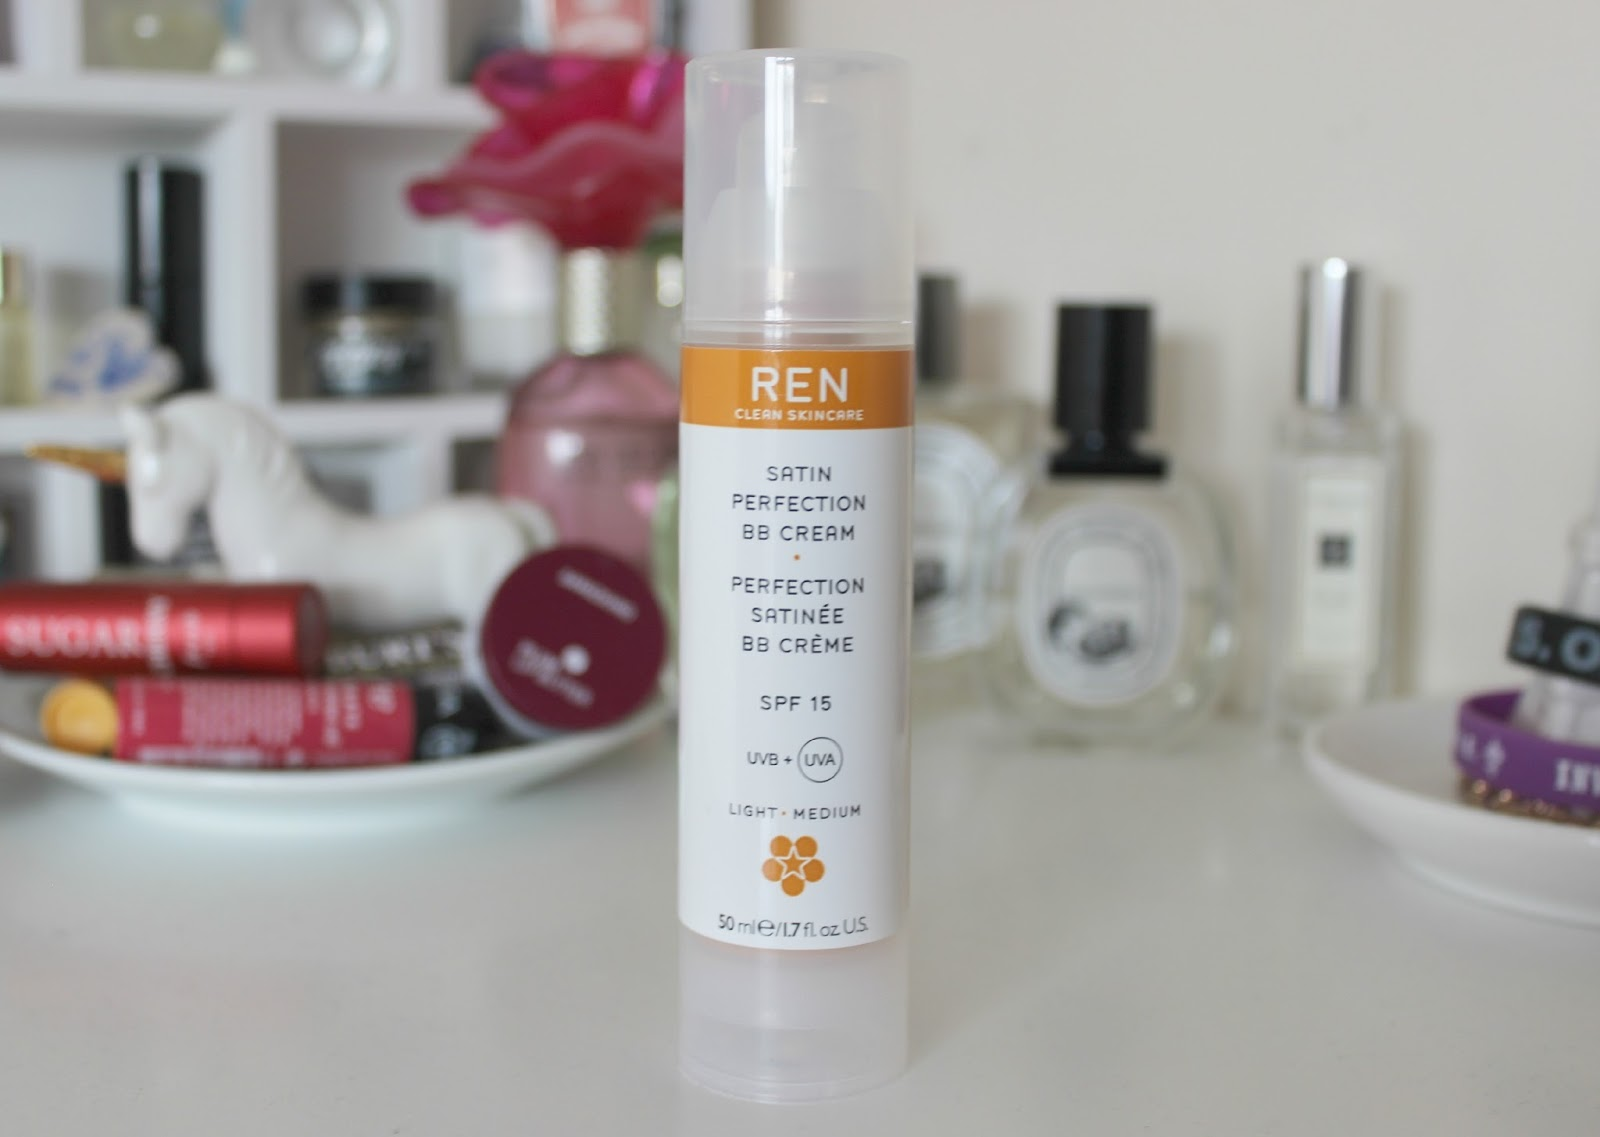 A picture of REN Satin Perfection BB Cream